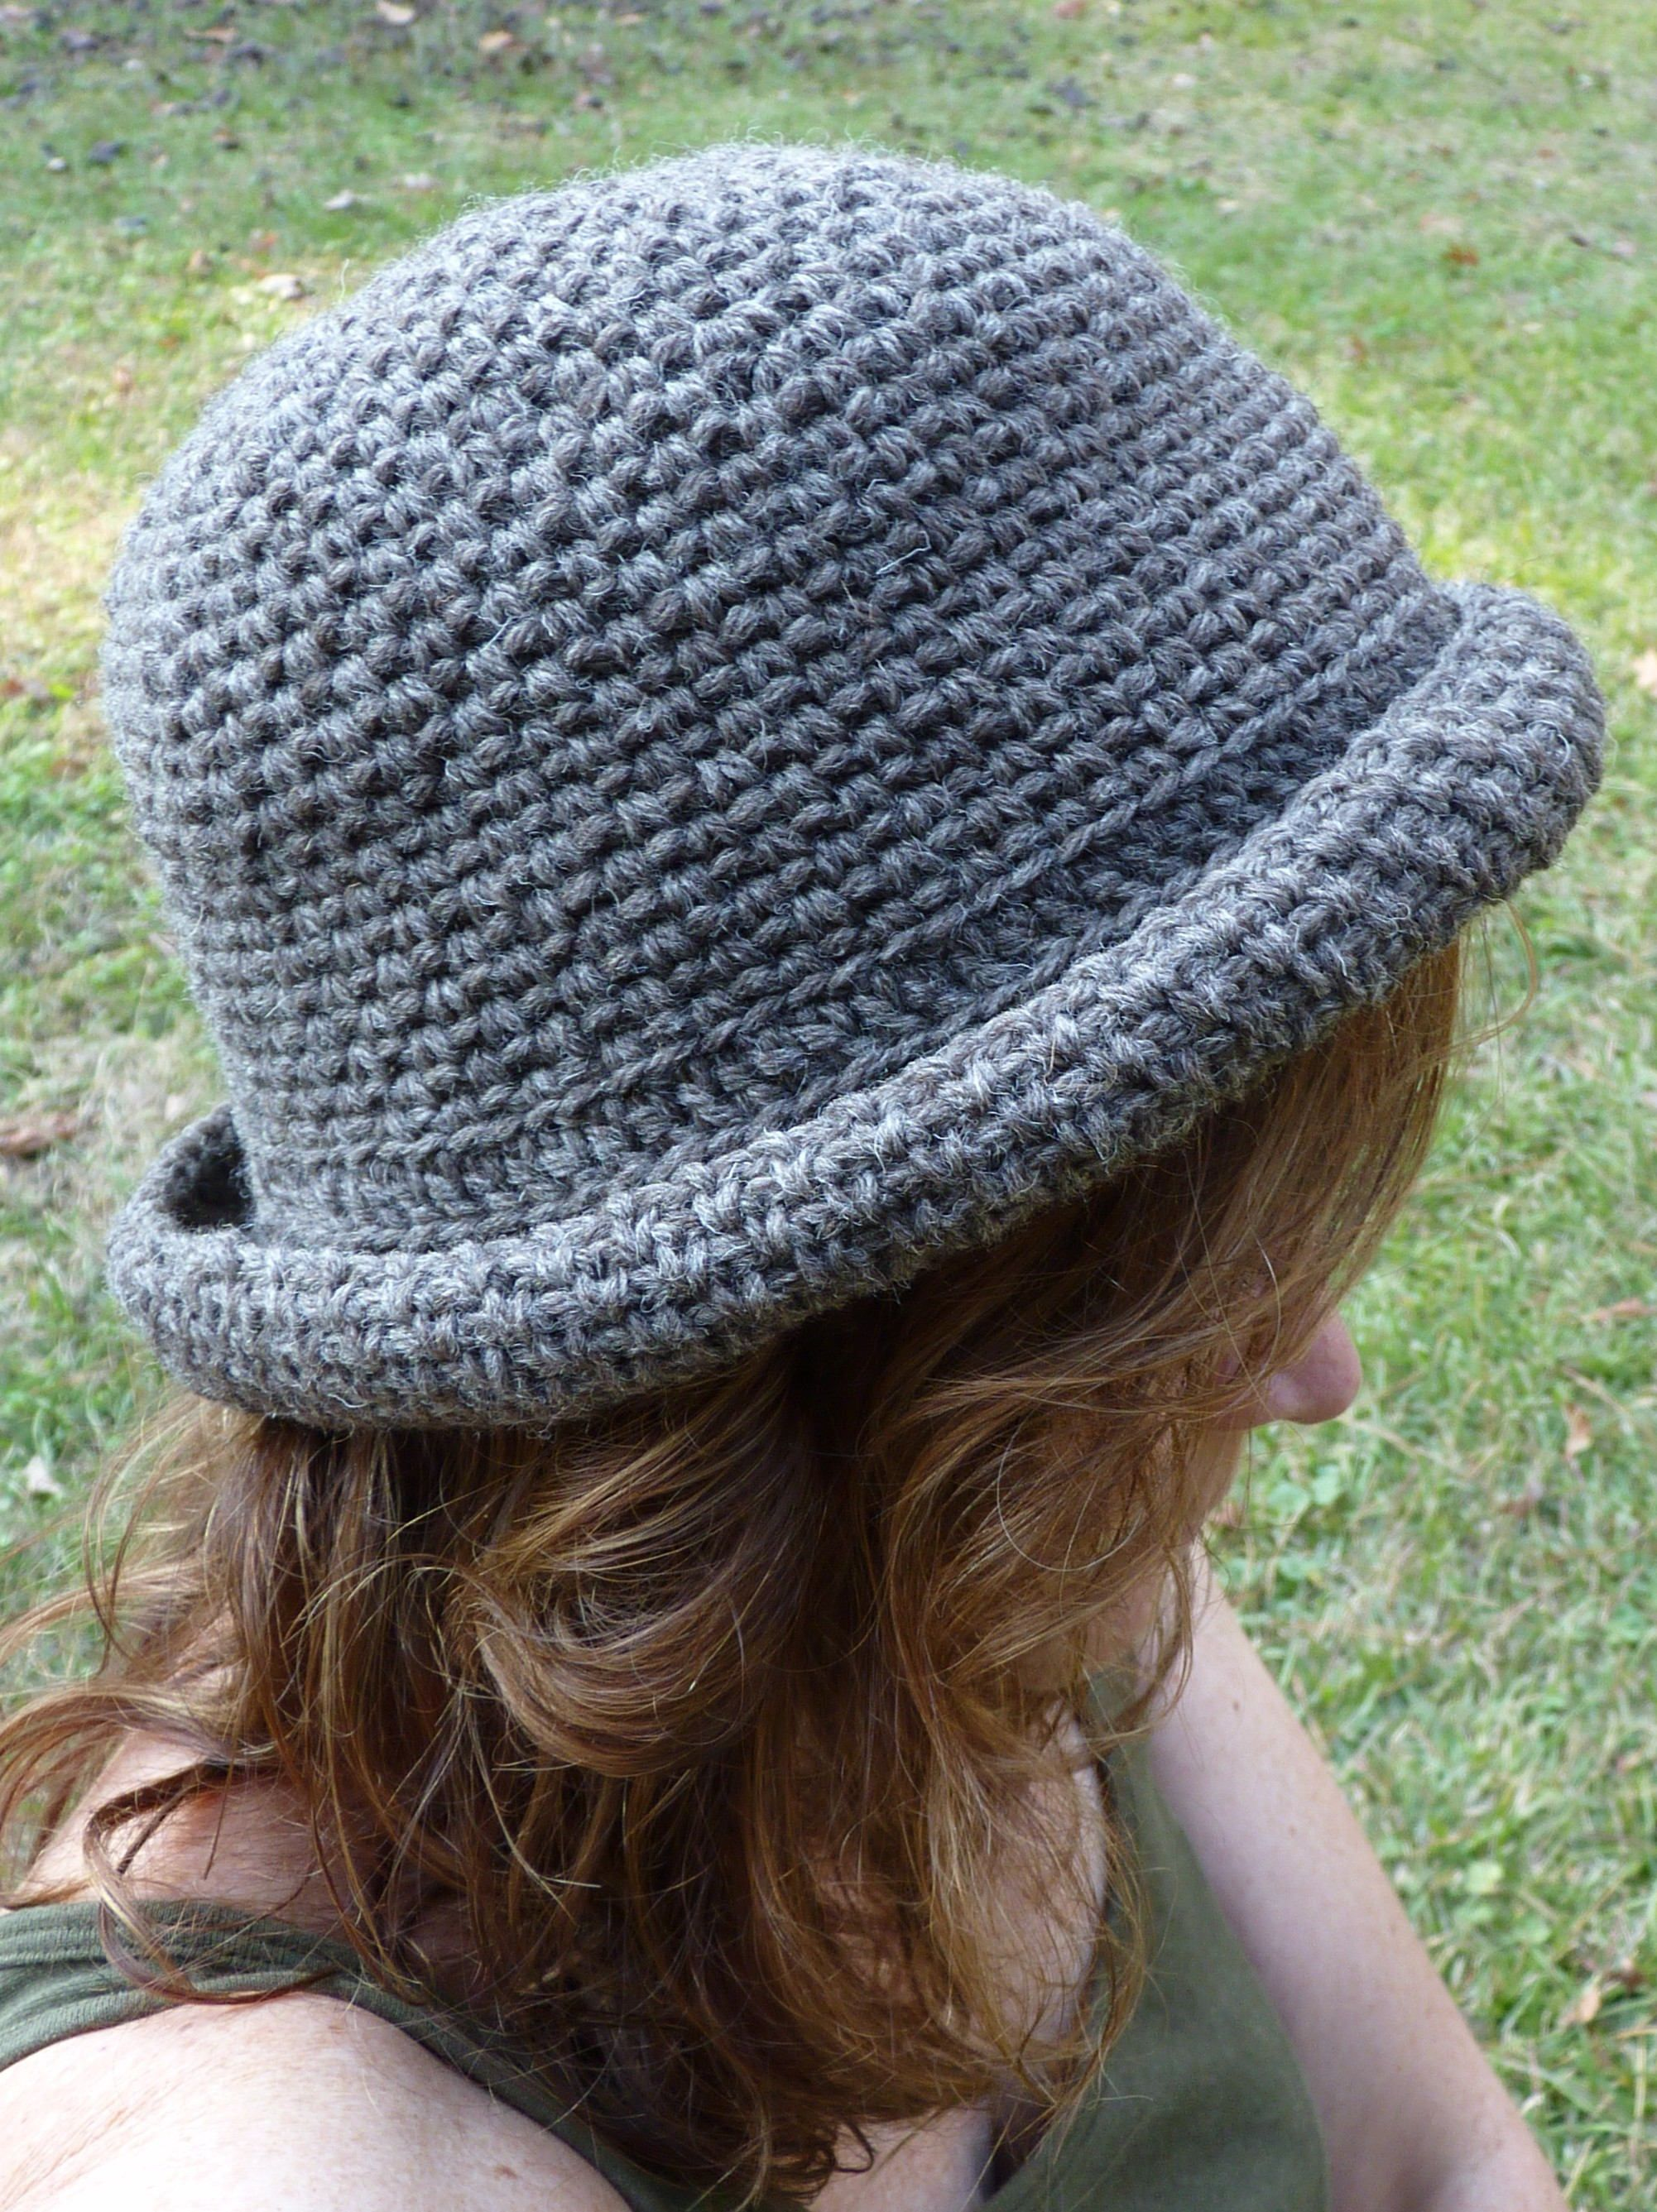 Sojourner s Brown Wool Crochet Bowler Hat by SojournersYarn on Etsy ... 88e08fd5a5a